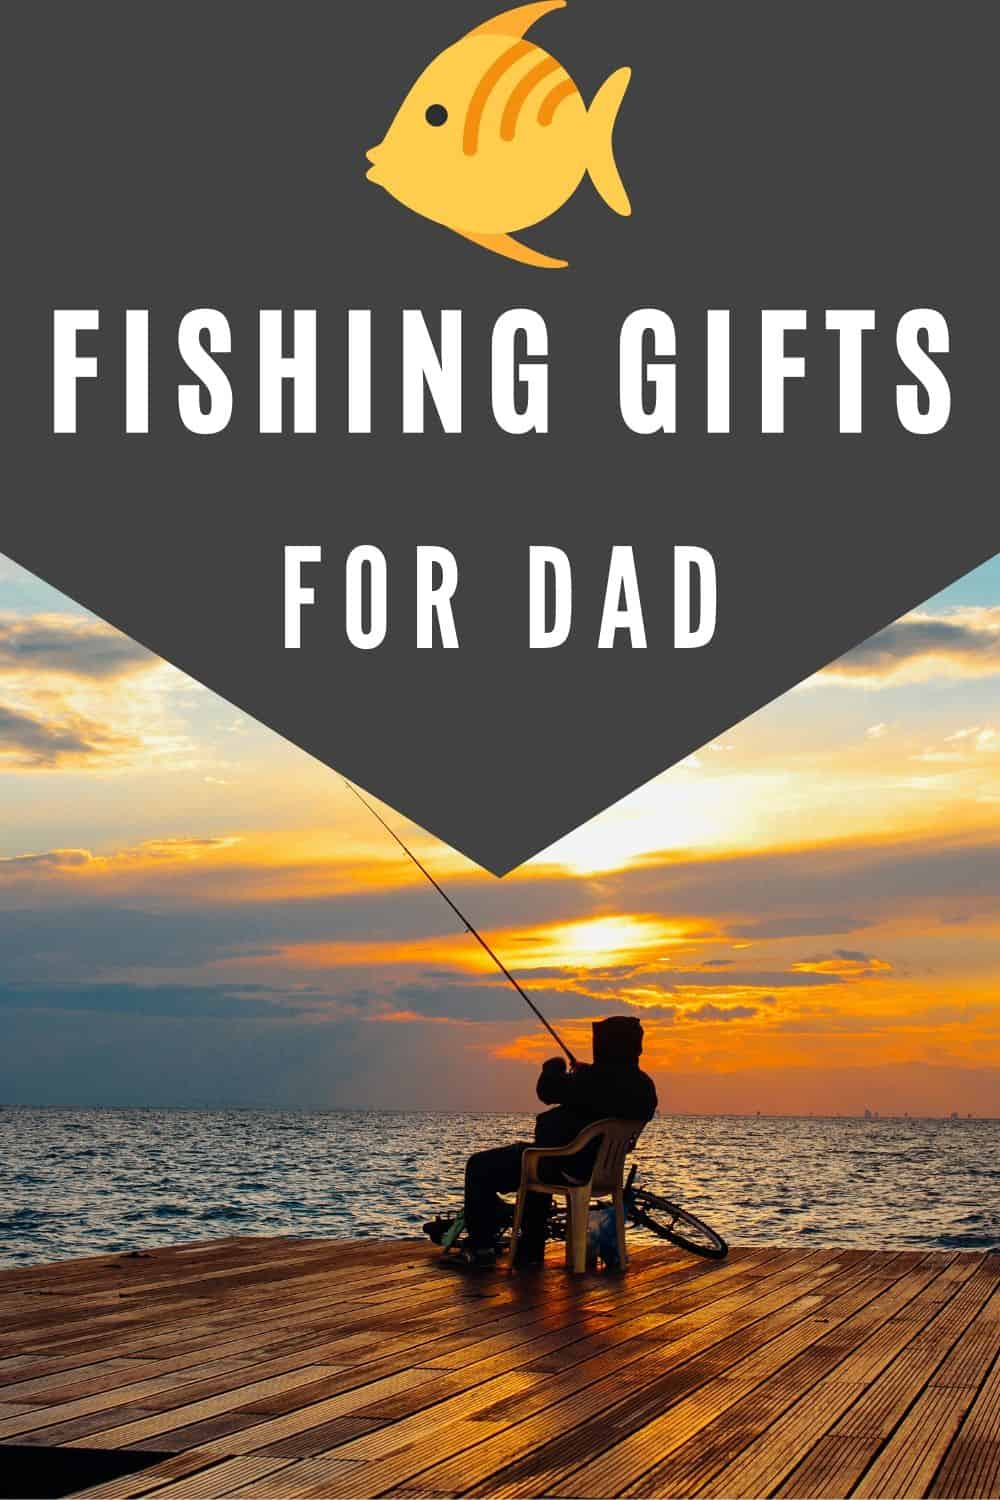 Fishing Gifts for Dad - Gift Ideas for Dads Who Love Fishing